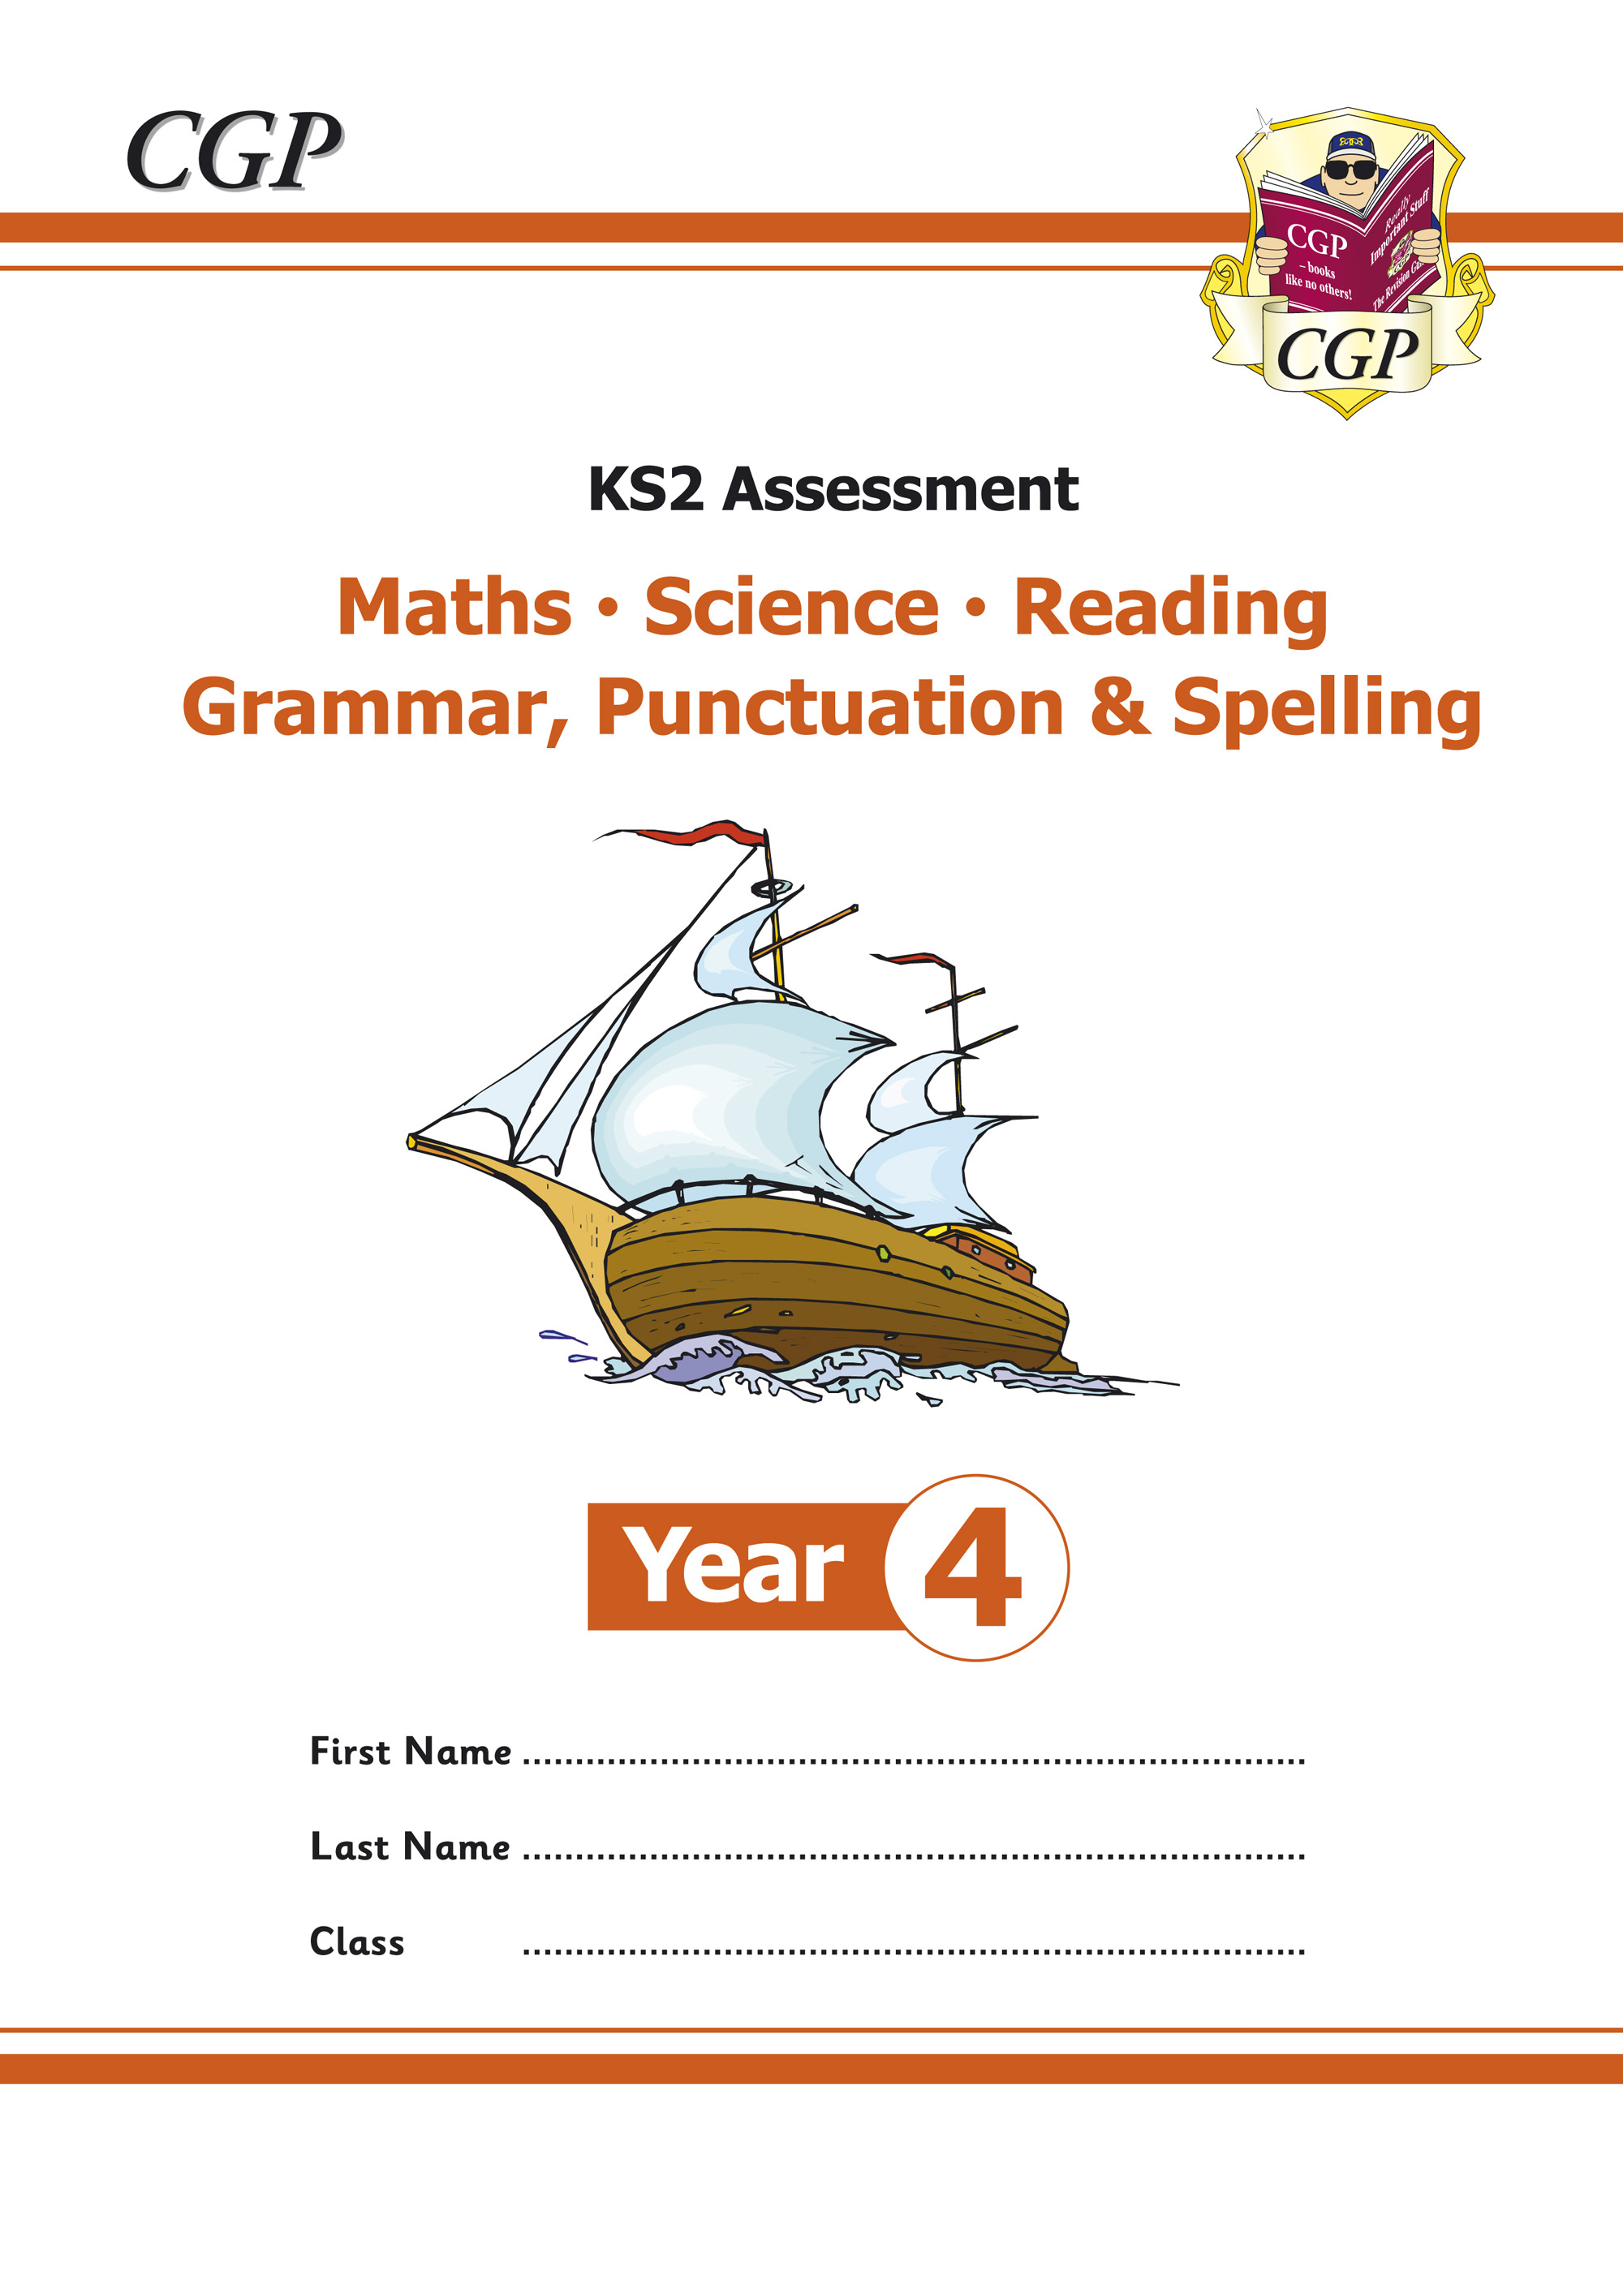 EMS4P21 - KS2 Assessment: Reading, SPaG, Maths and Science - Year 4 Tests